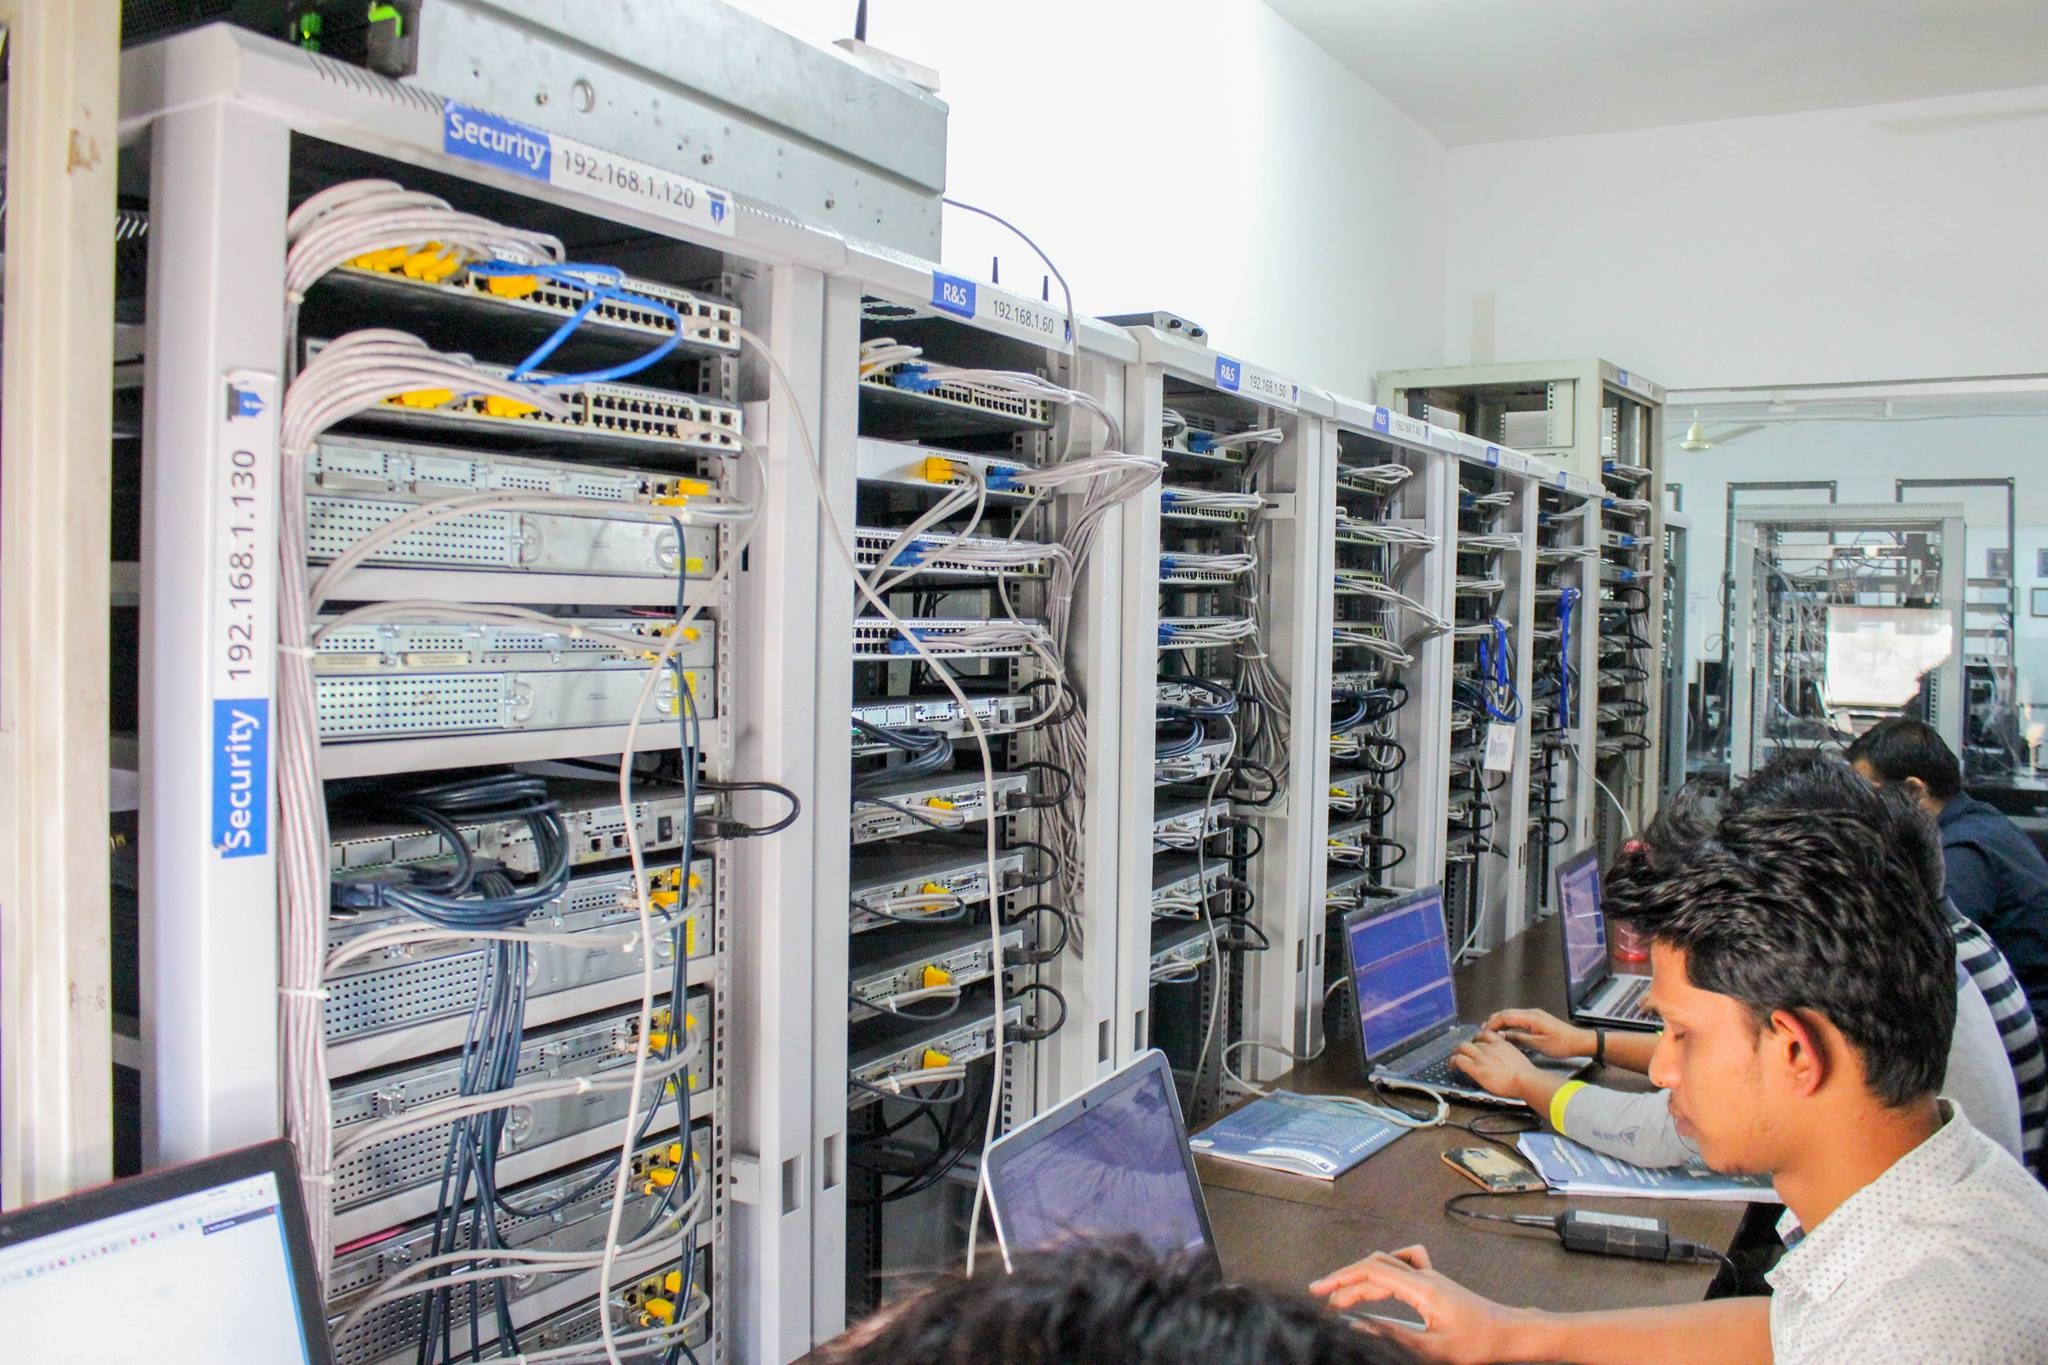 Does CISCO provide training for CCNA certification in India